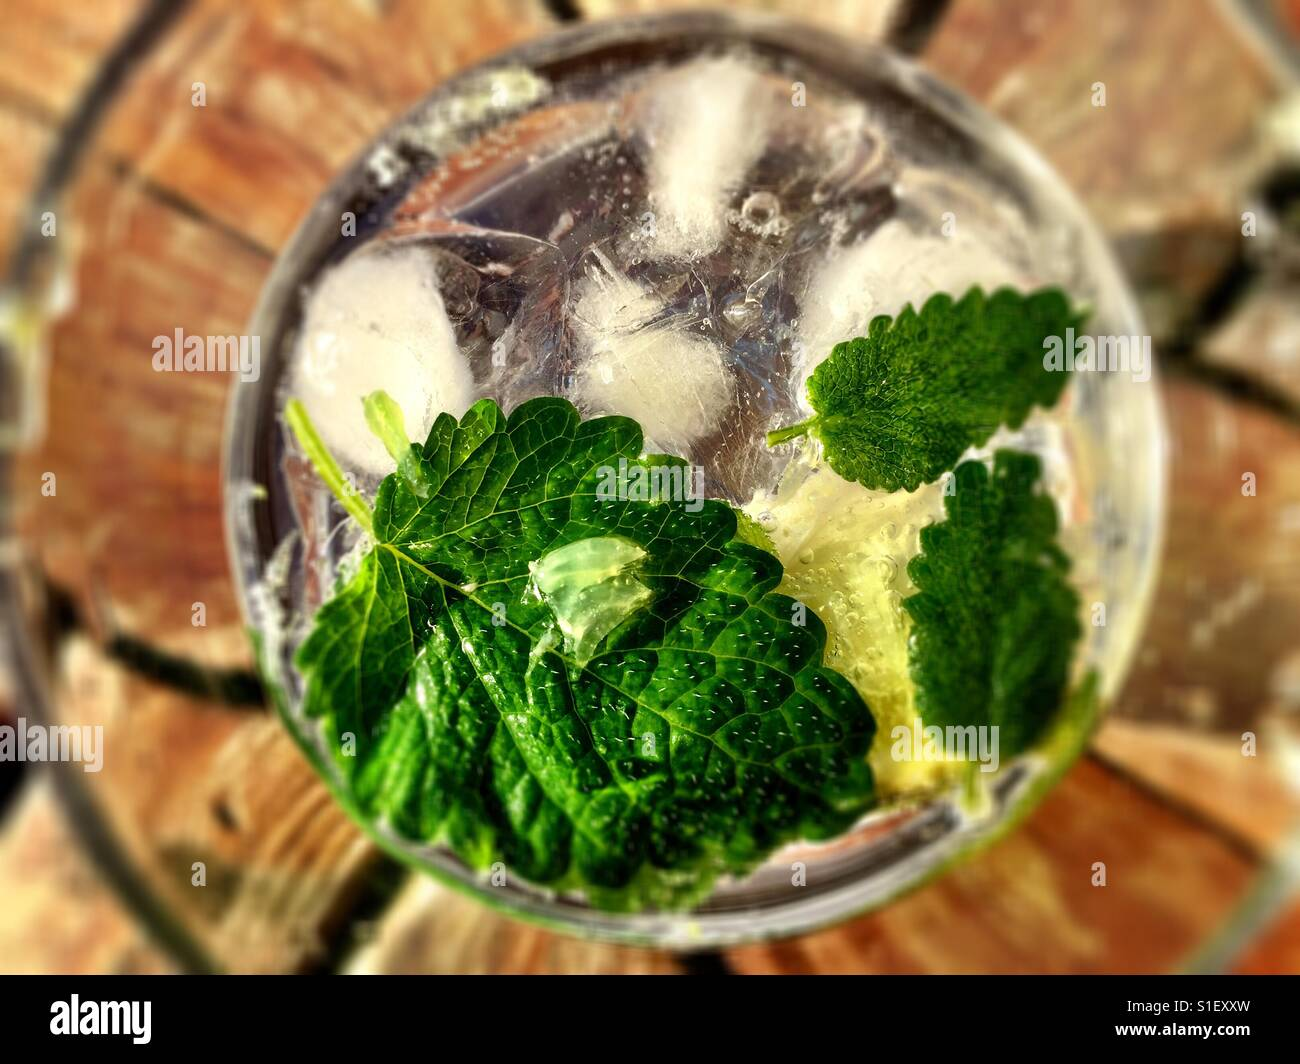 Gin and tonic made with lime, apple balm mint (which was gorgeous) and tons of ice. Sooo good. - Stock Image